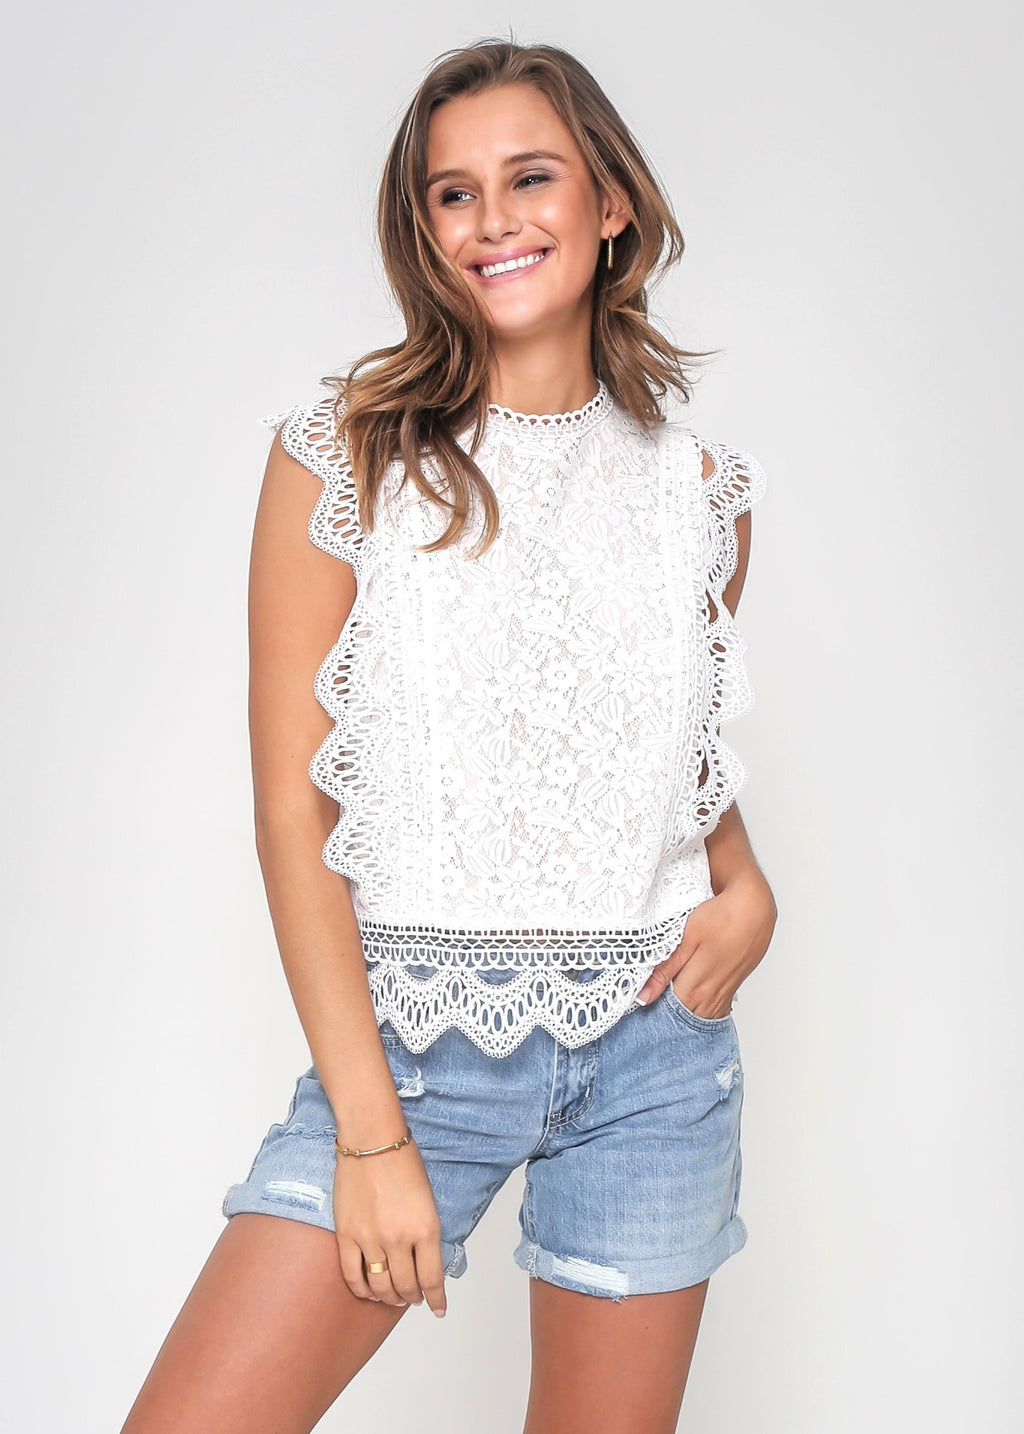 MIRANDA LACE TOP - WHITE